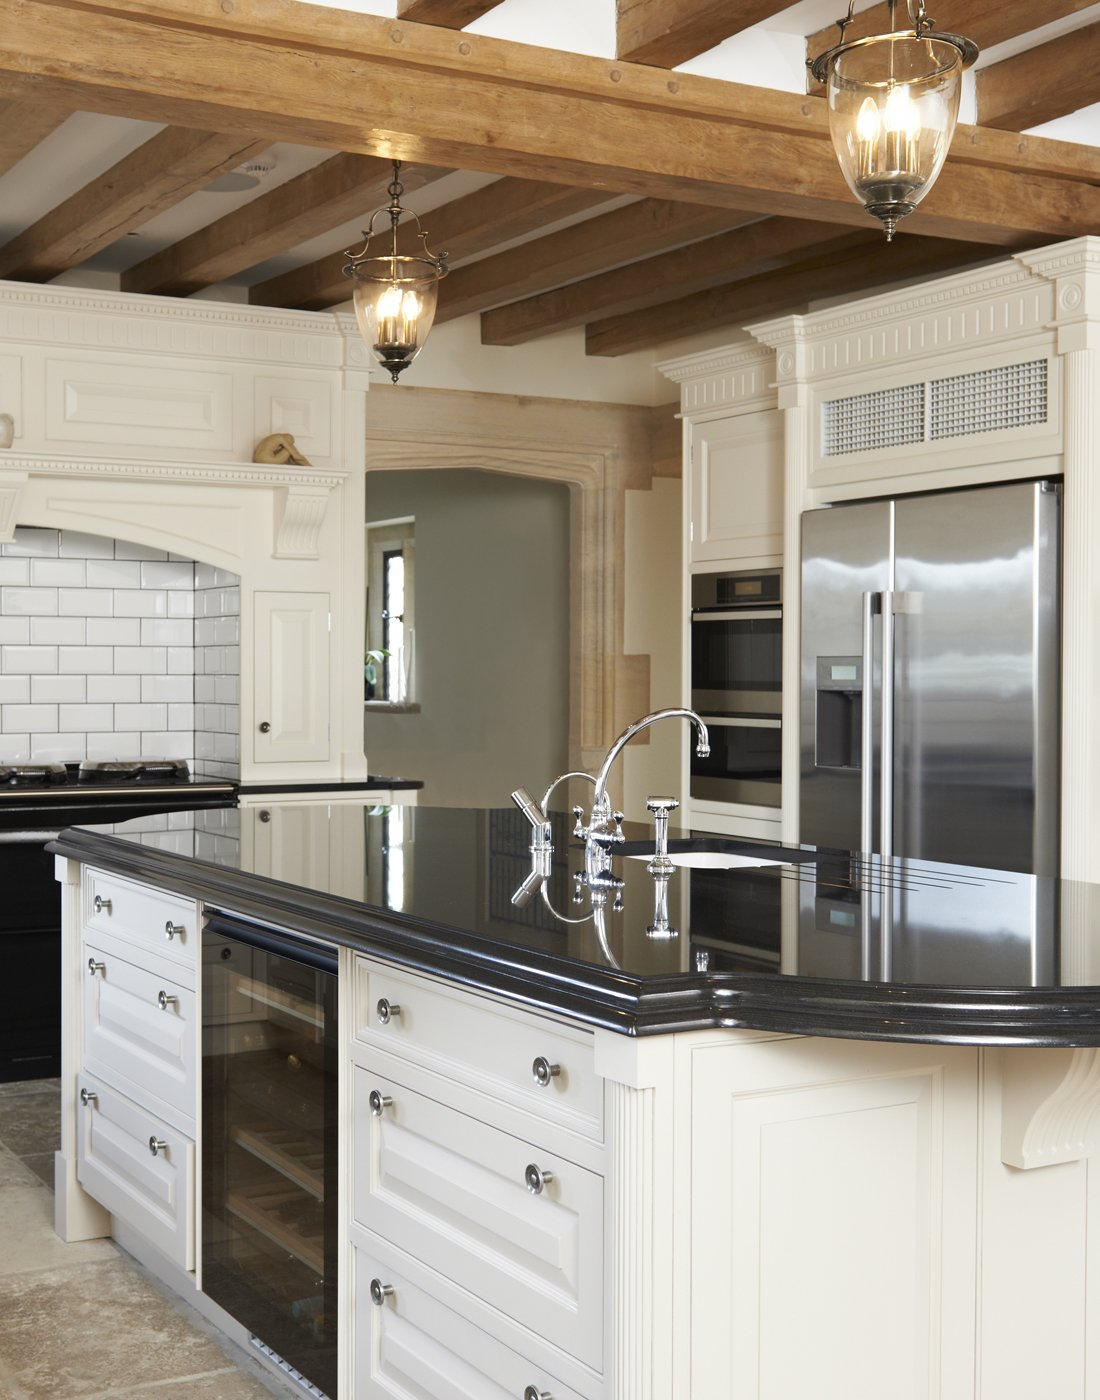 About Kitchen Refacing Designers